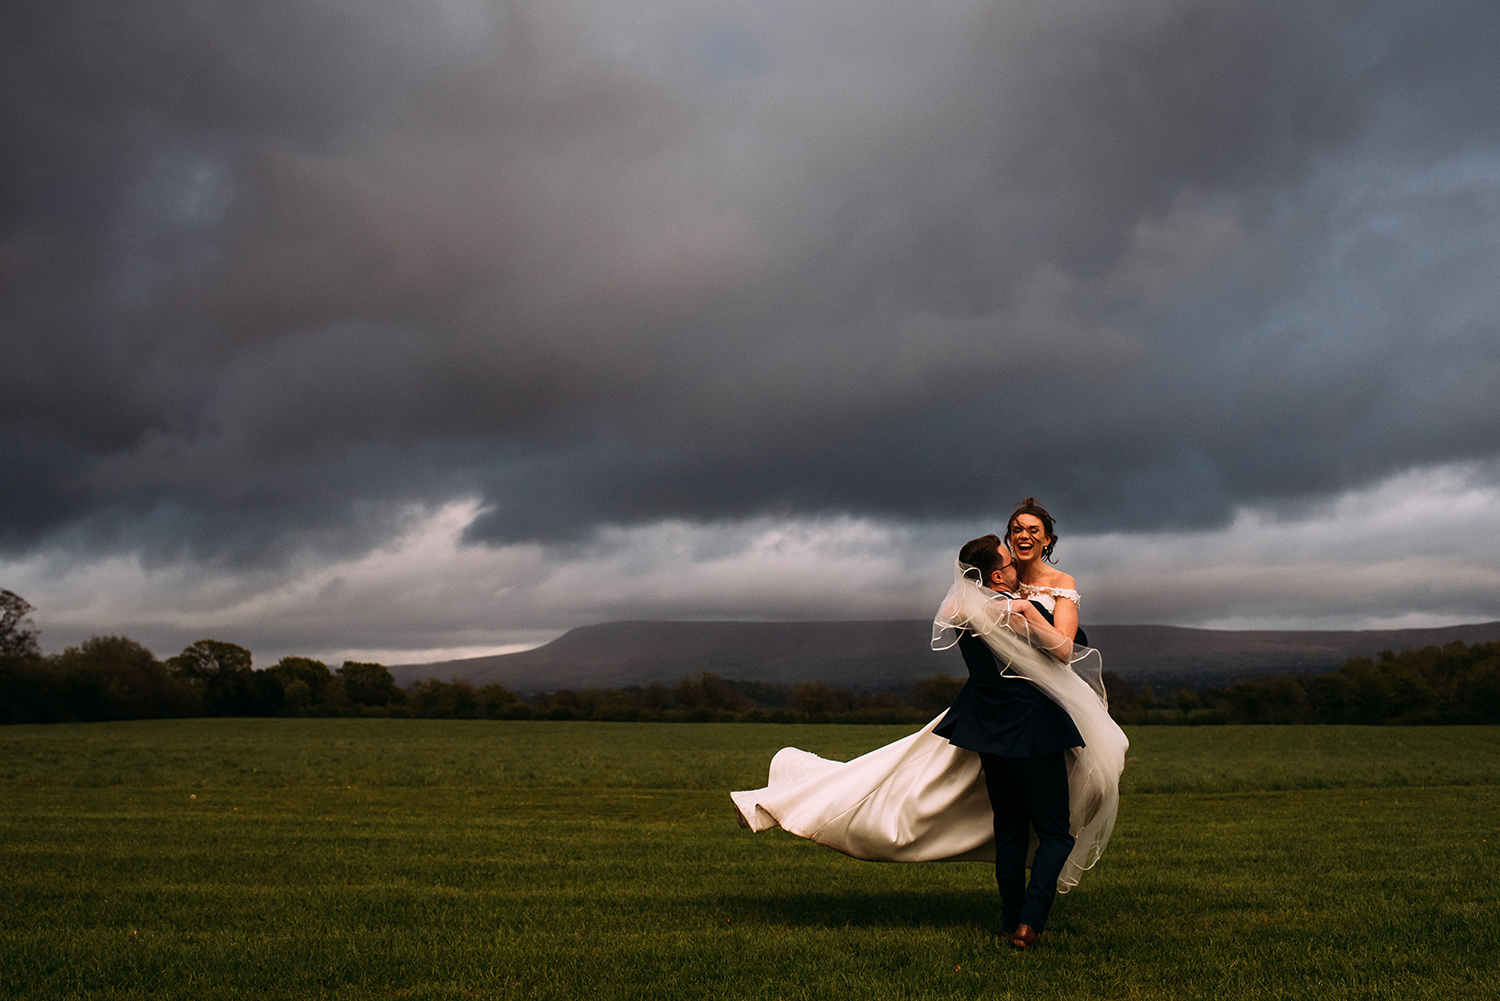 Groom picks up the bride and spins her at the Out Barn with Pendle hill in the background.